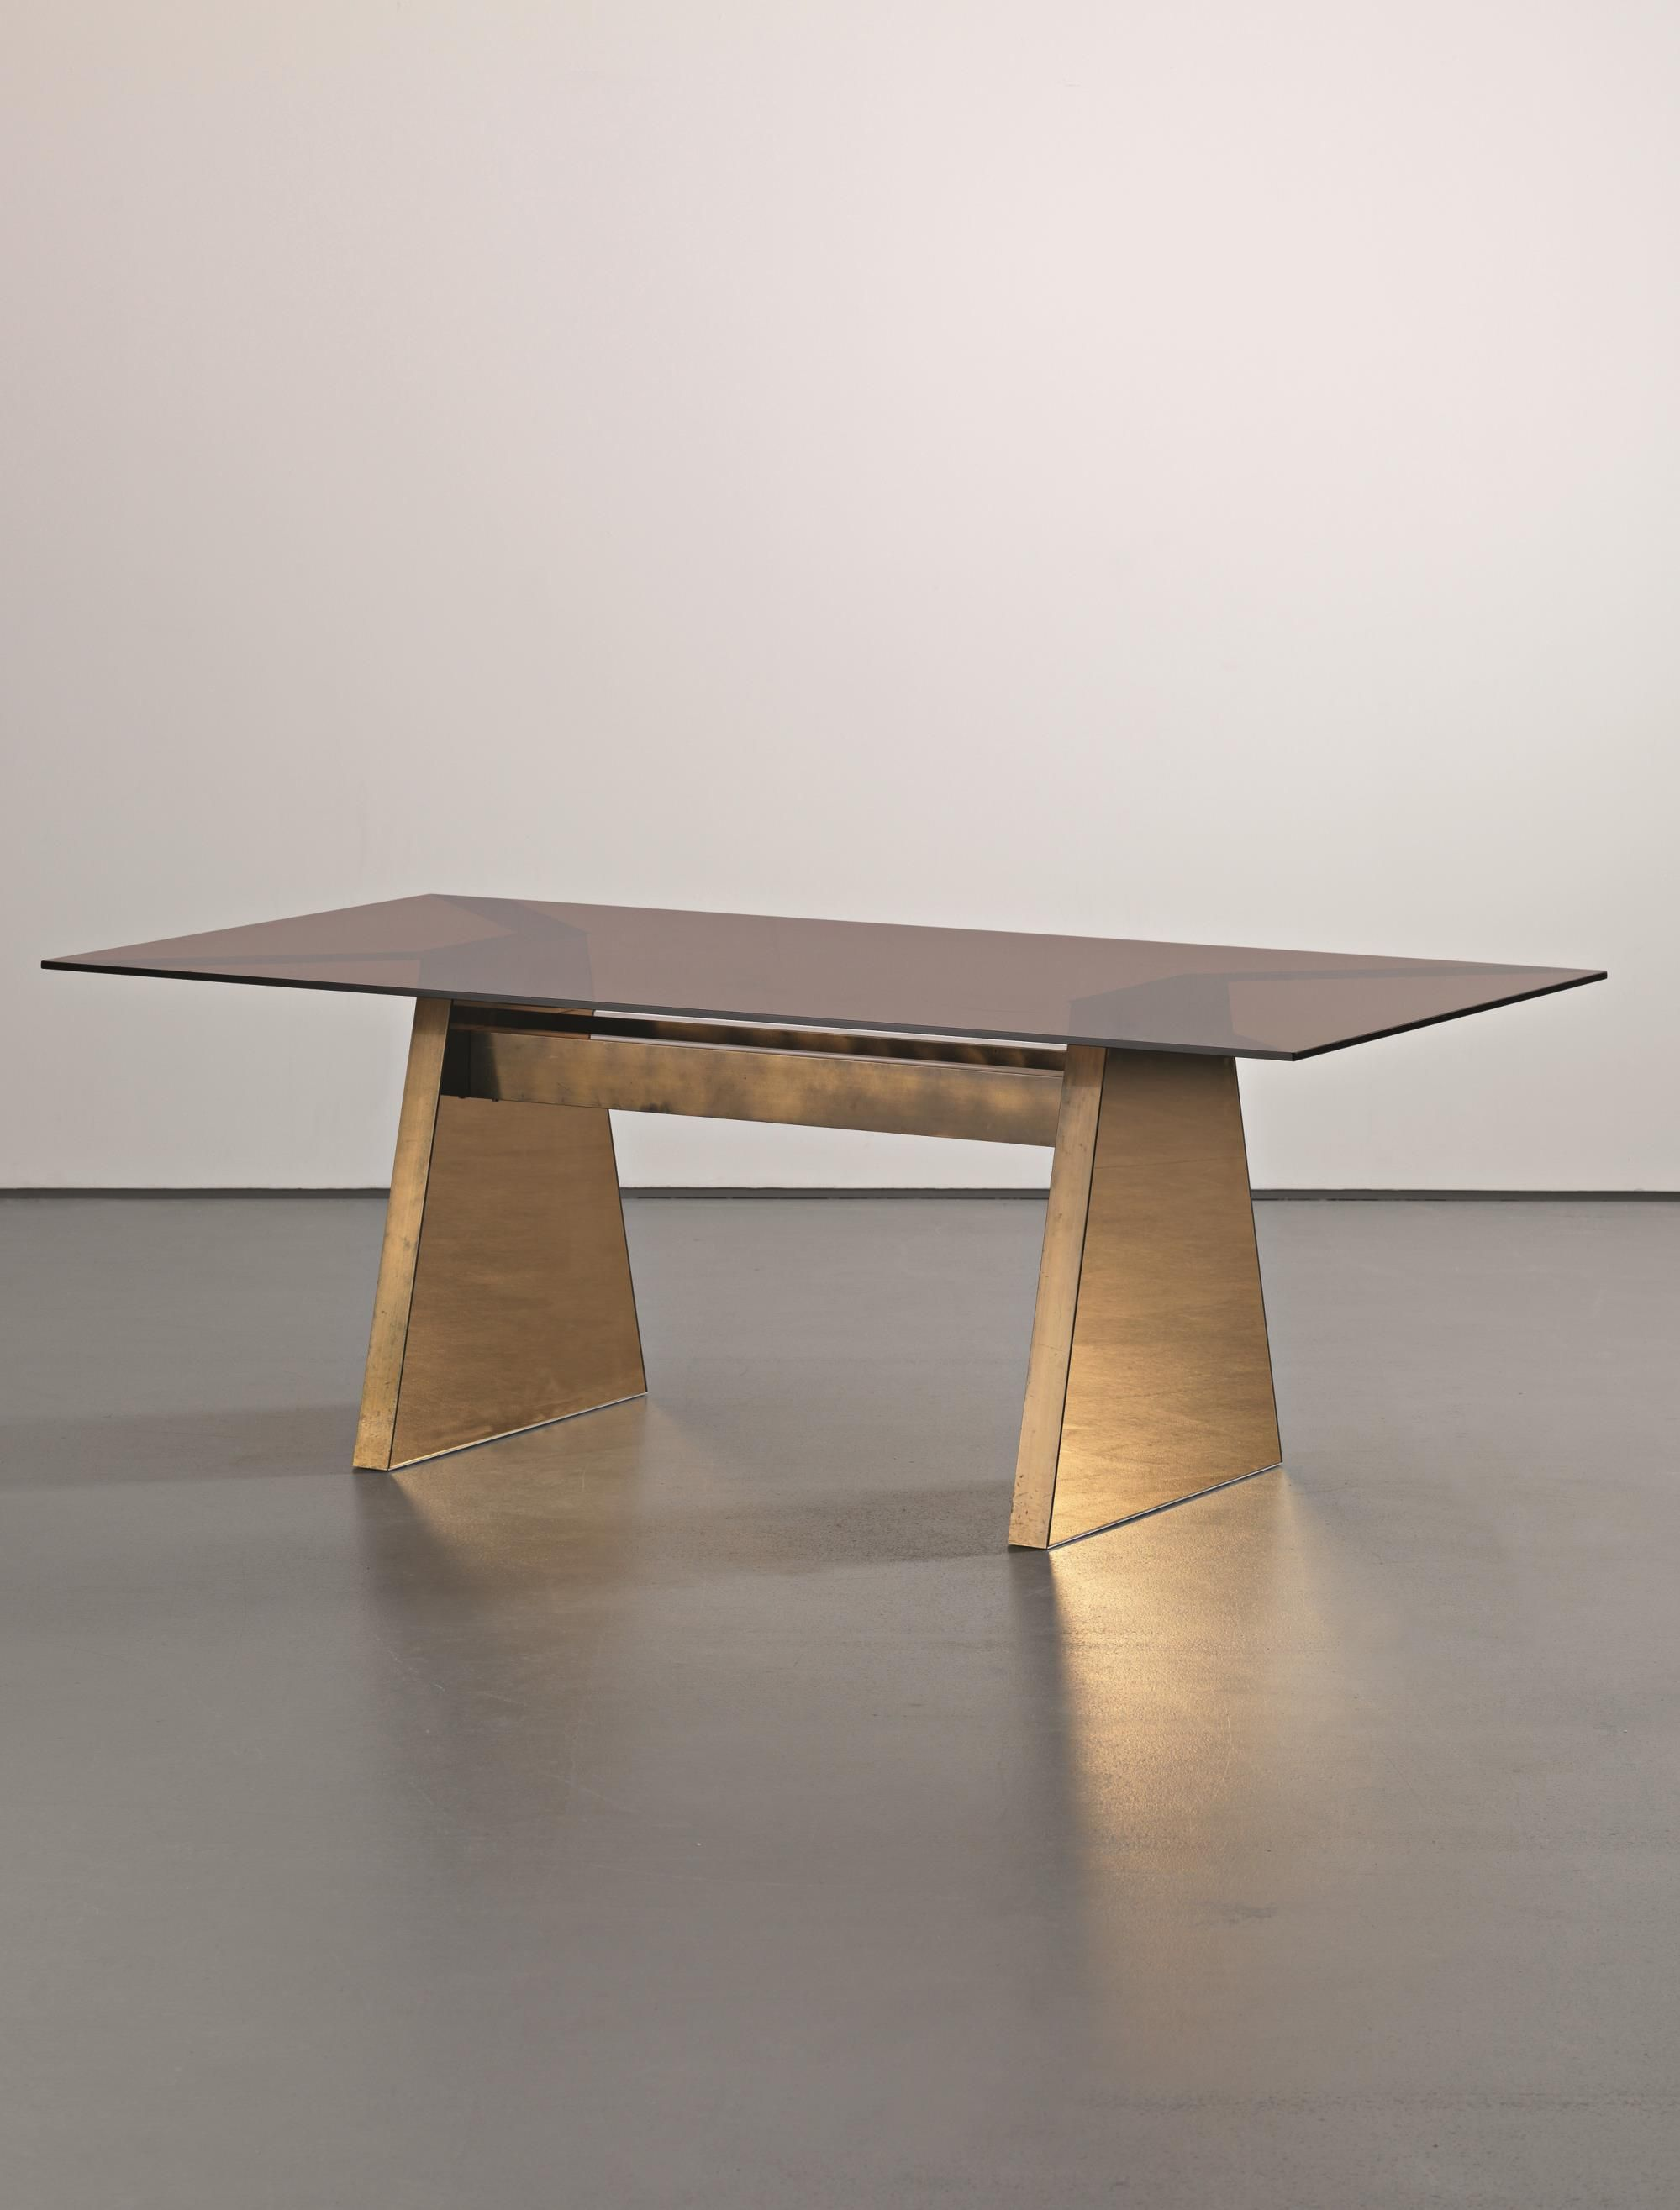 Nanda vigo unique brass and glass dining table by conconi for Exclusive esszimmertische